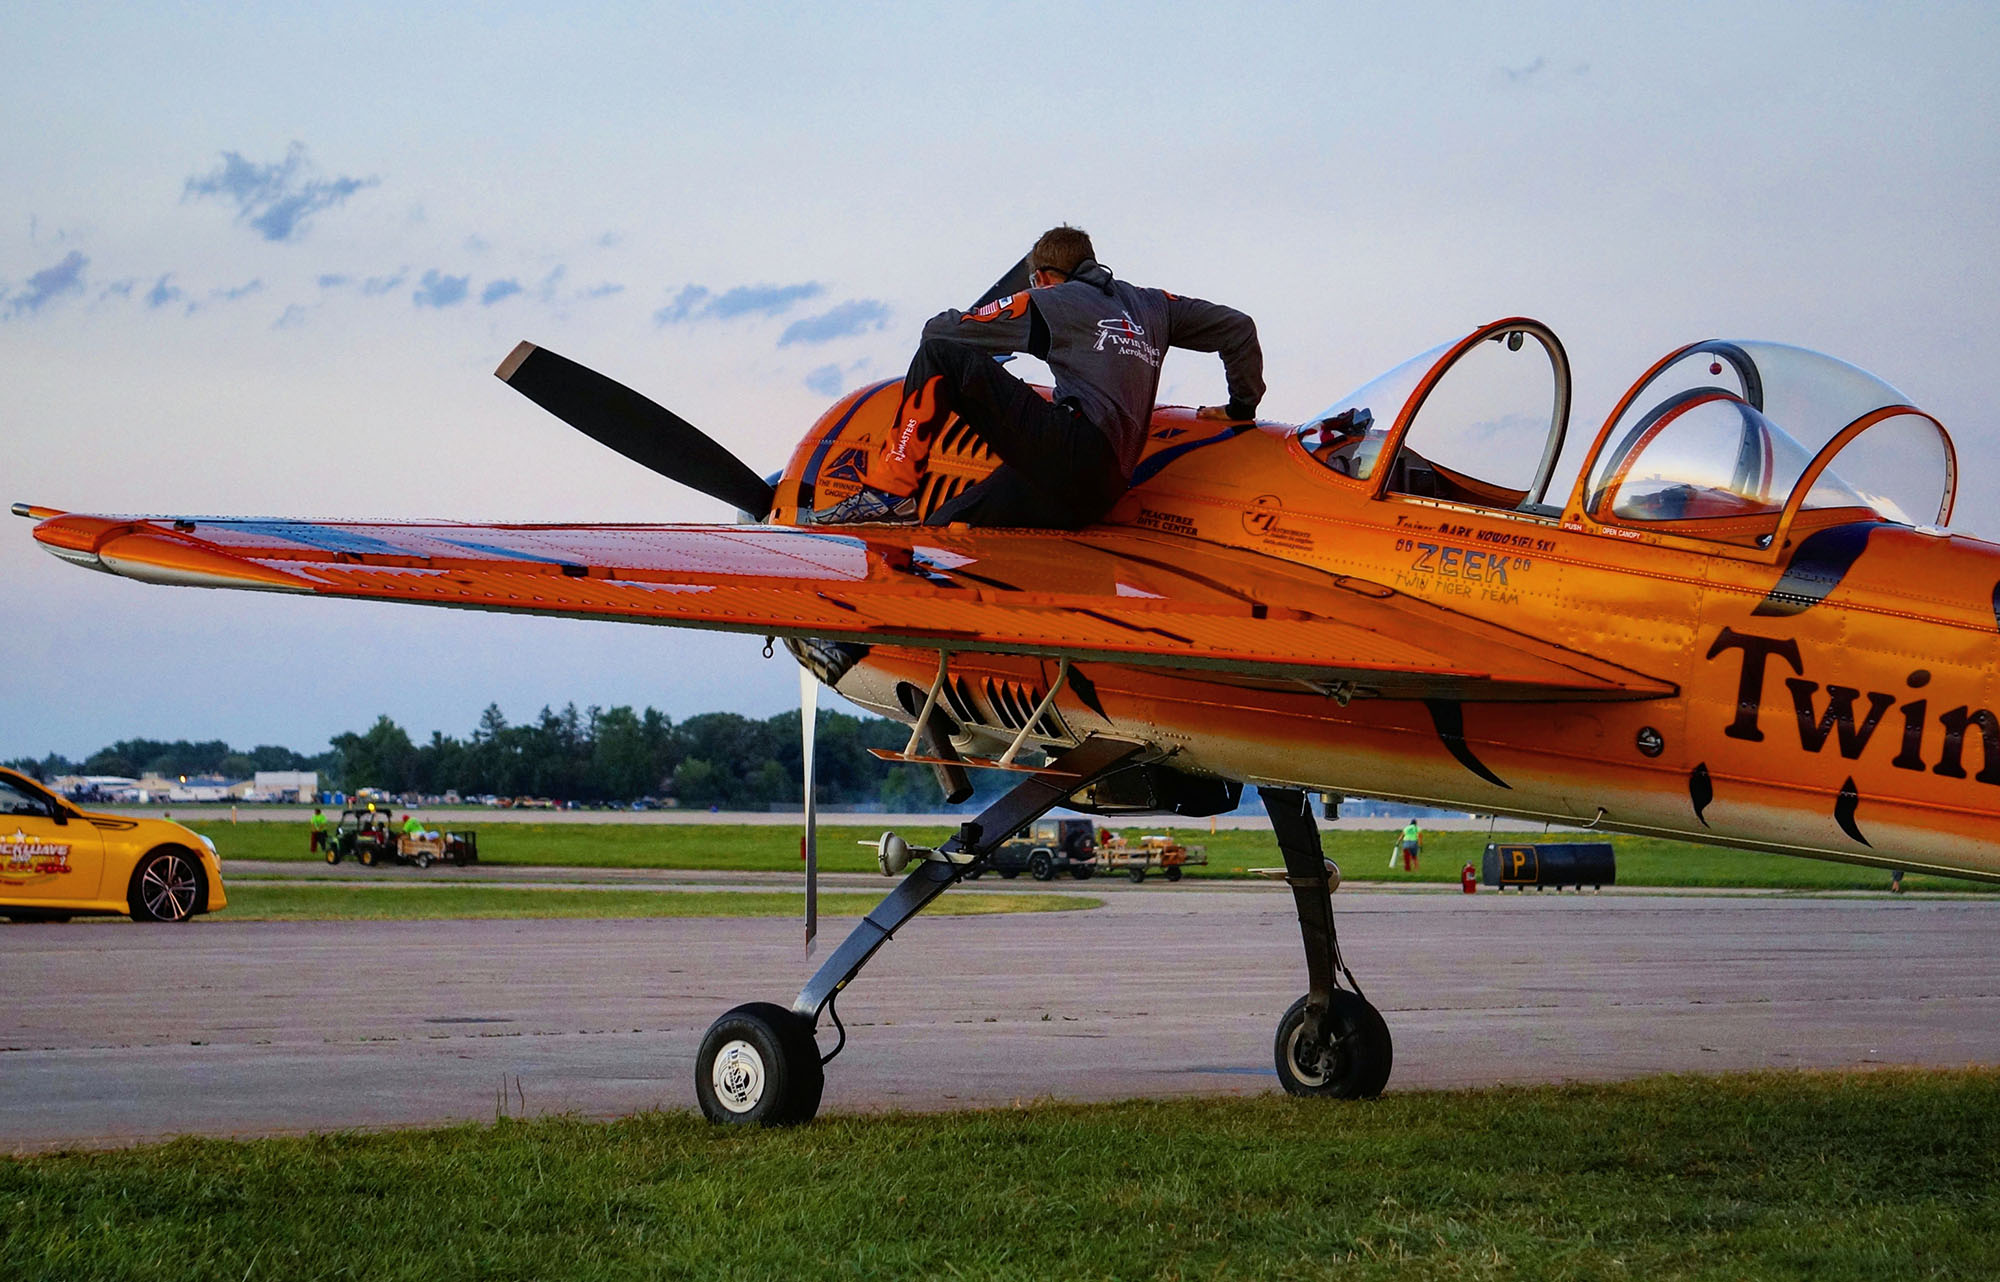 A Touching Tribute To Twin Tigers Airshow Star Mark Nowosielski